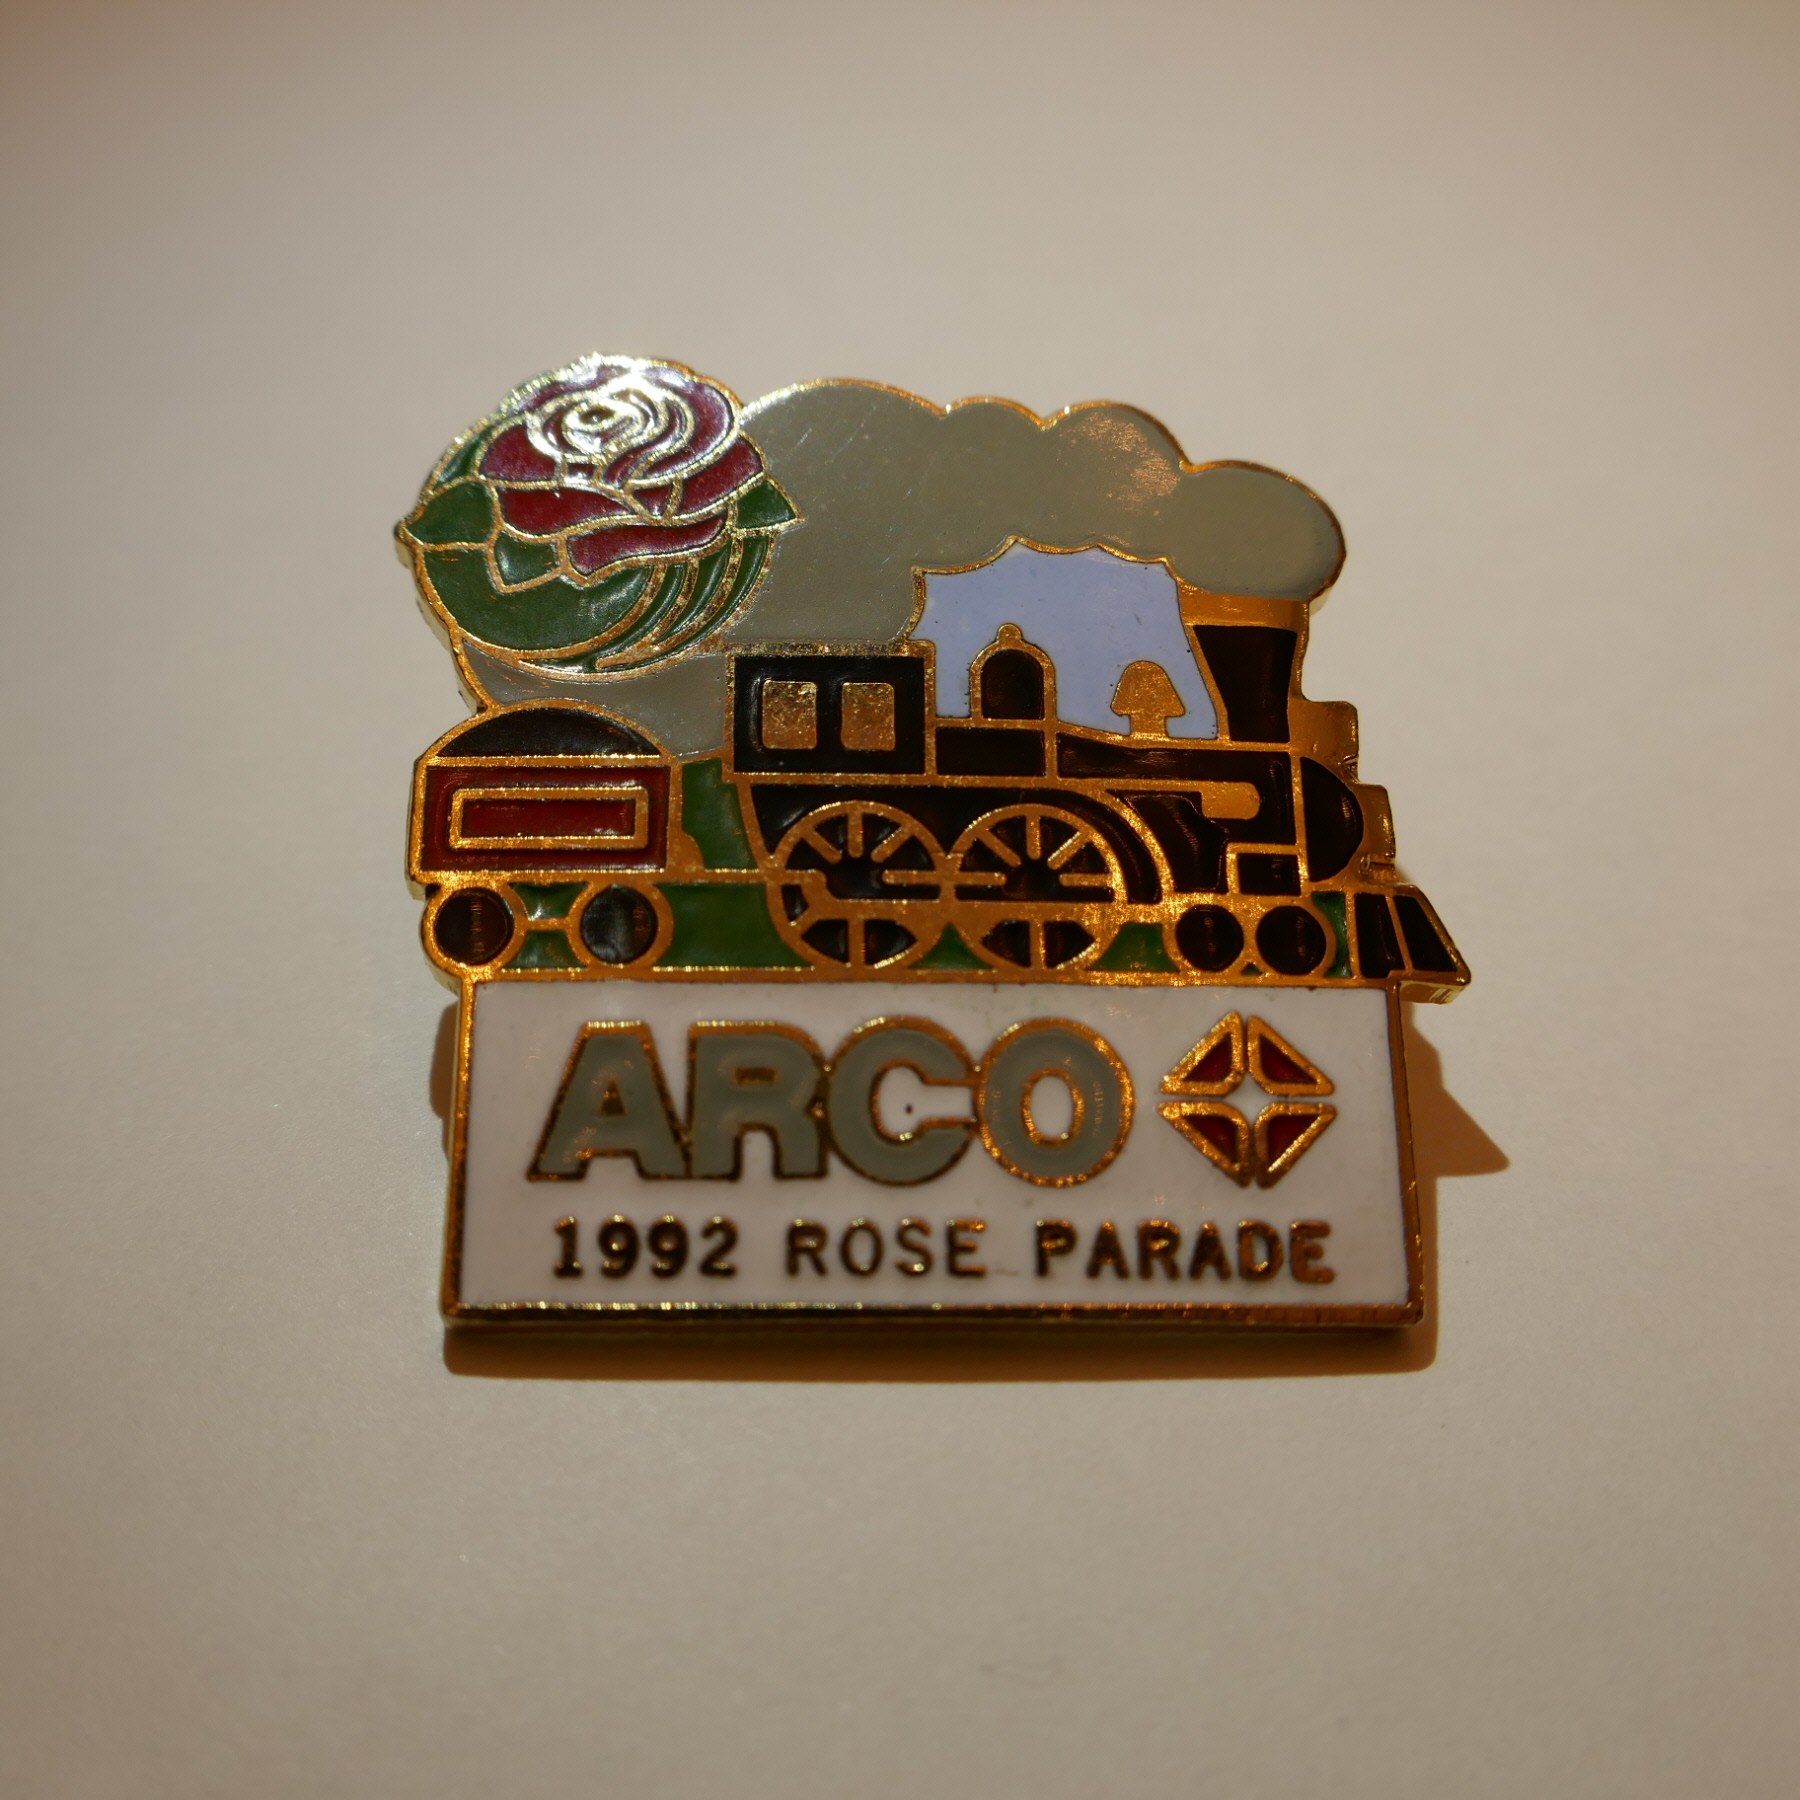 ARCO 1992 rose parade pins